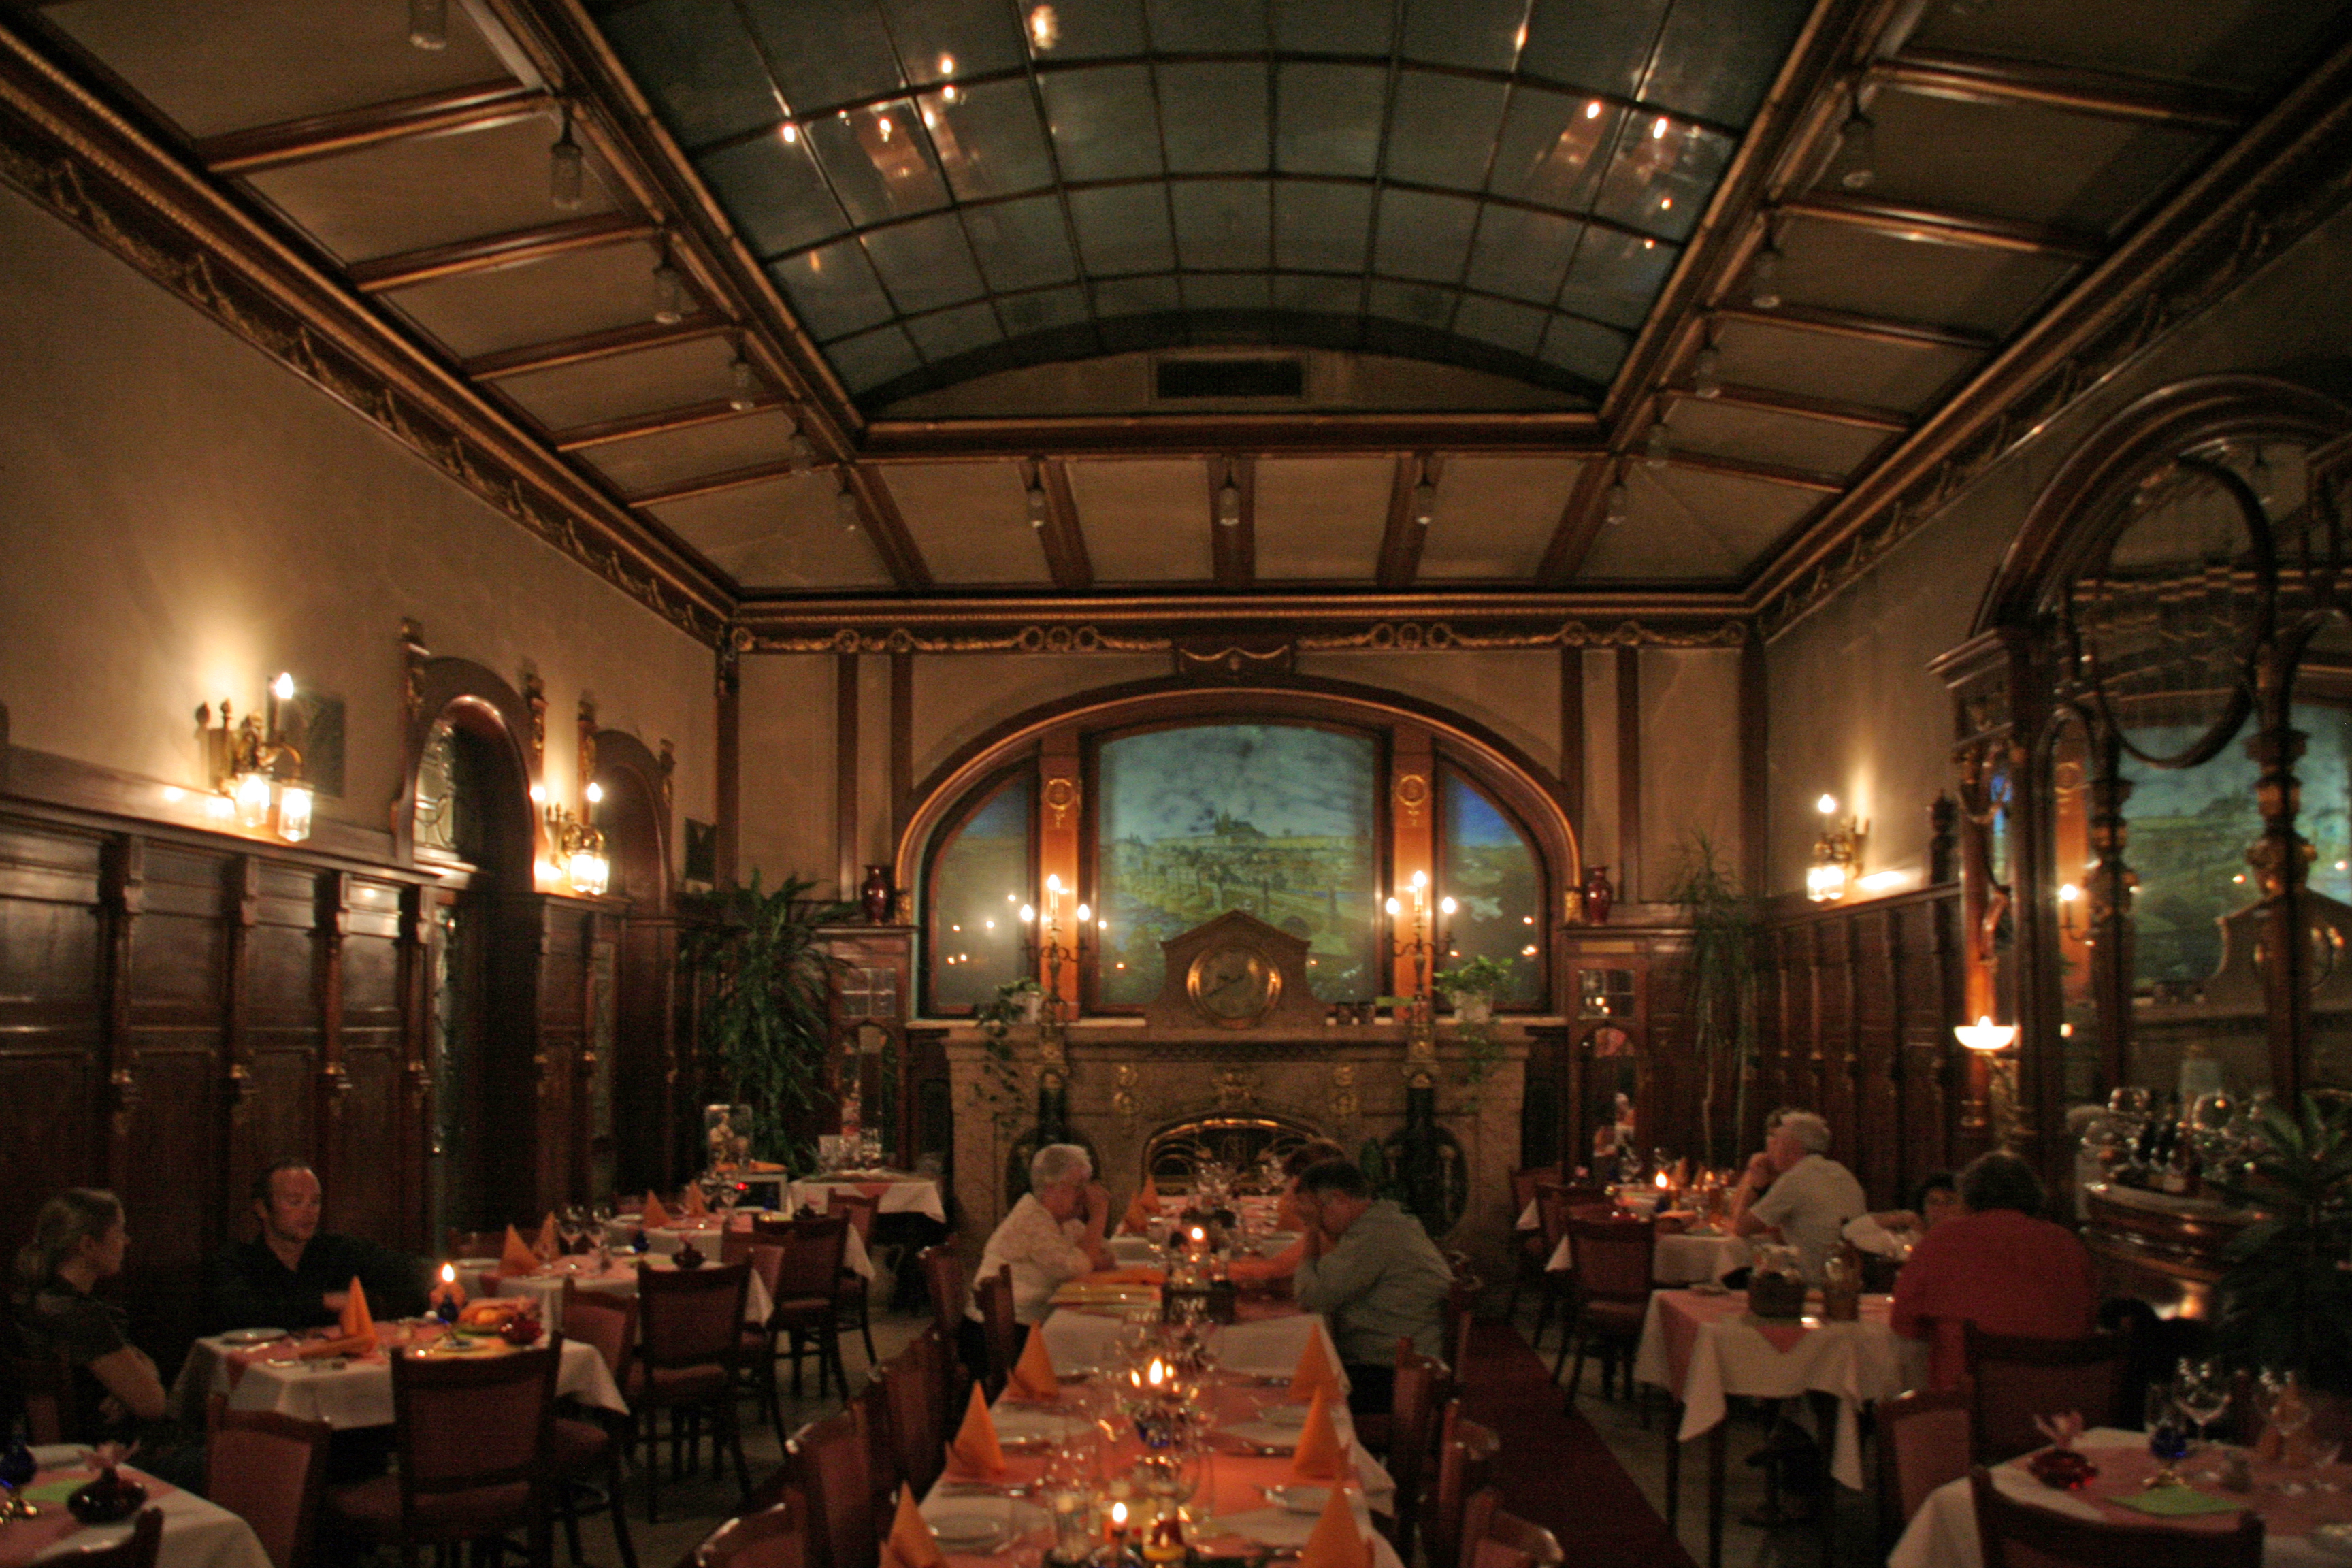 Grand hotel europa titanic restaurant flickr photo for Hotel reservation in prague